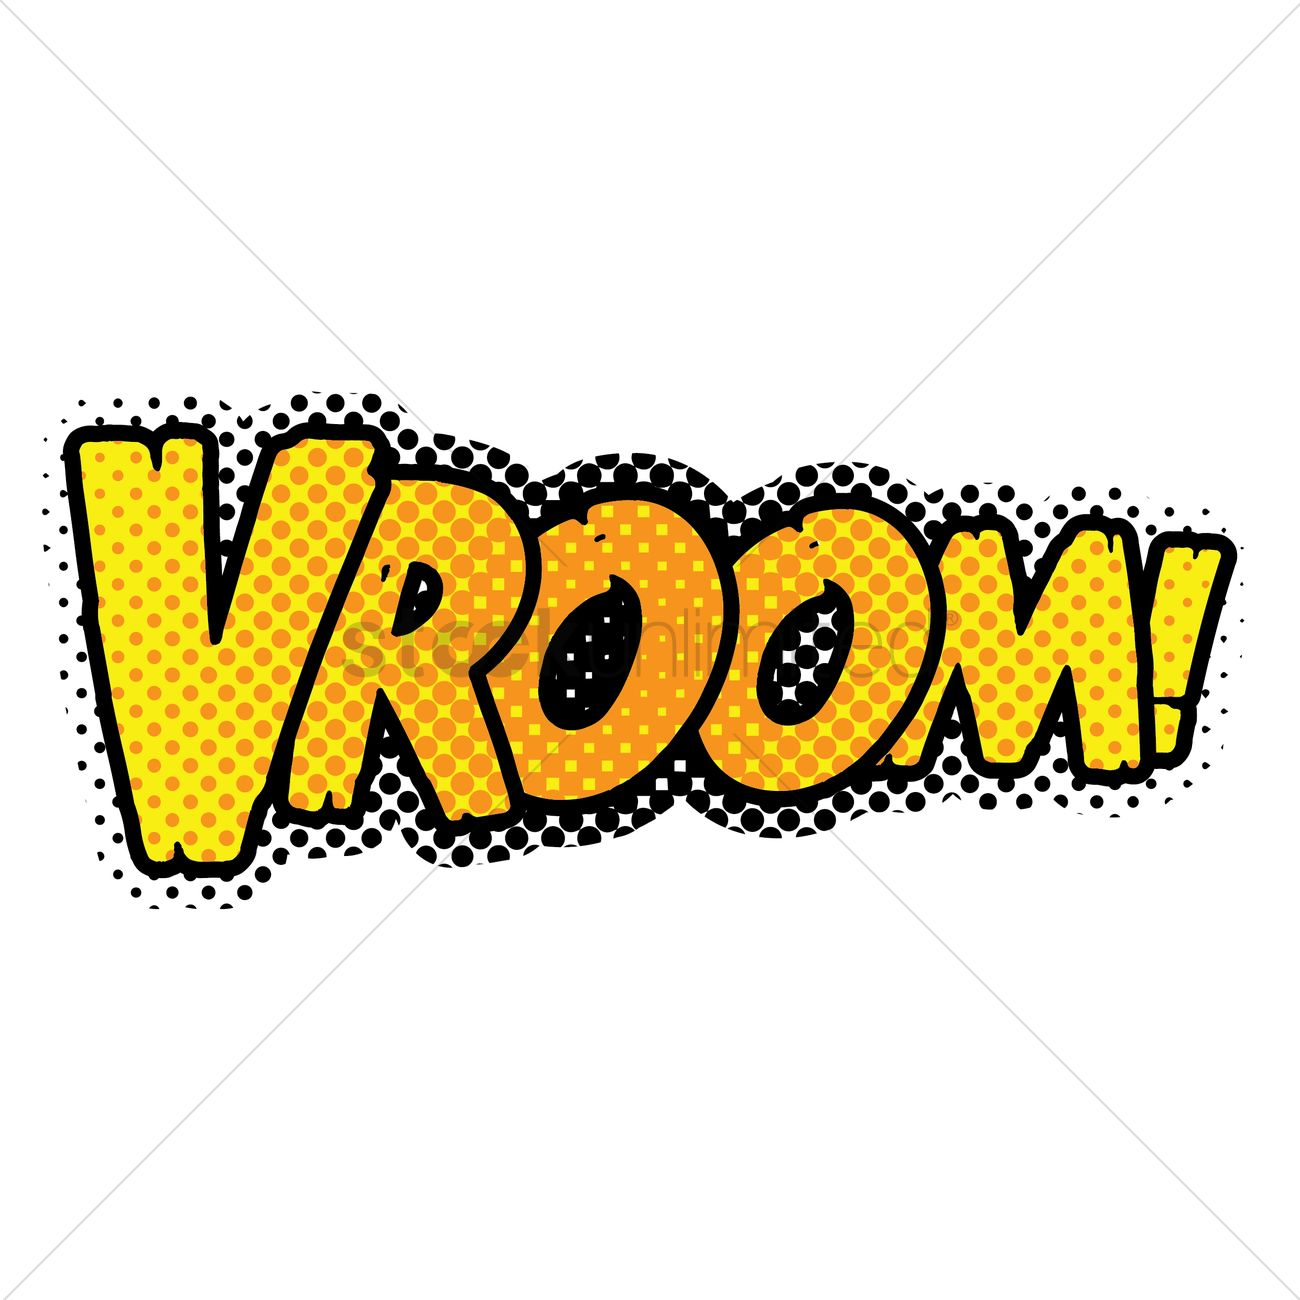 Vroom text with comic effect Vector Image.